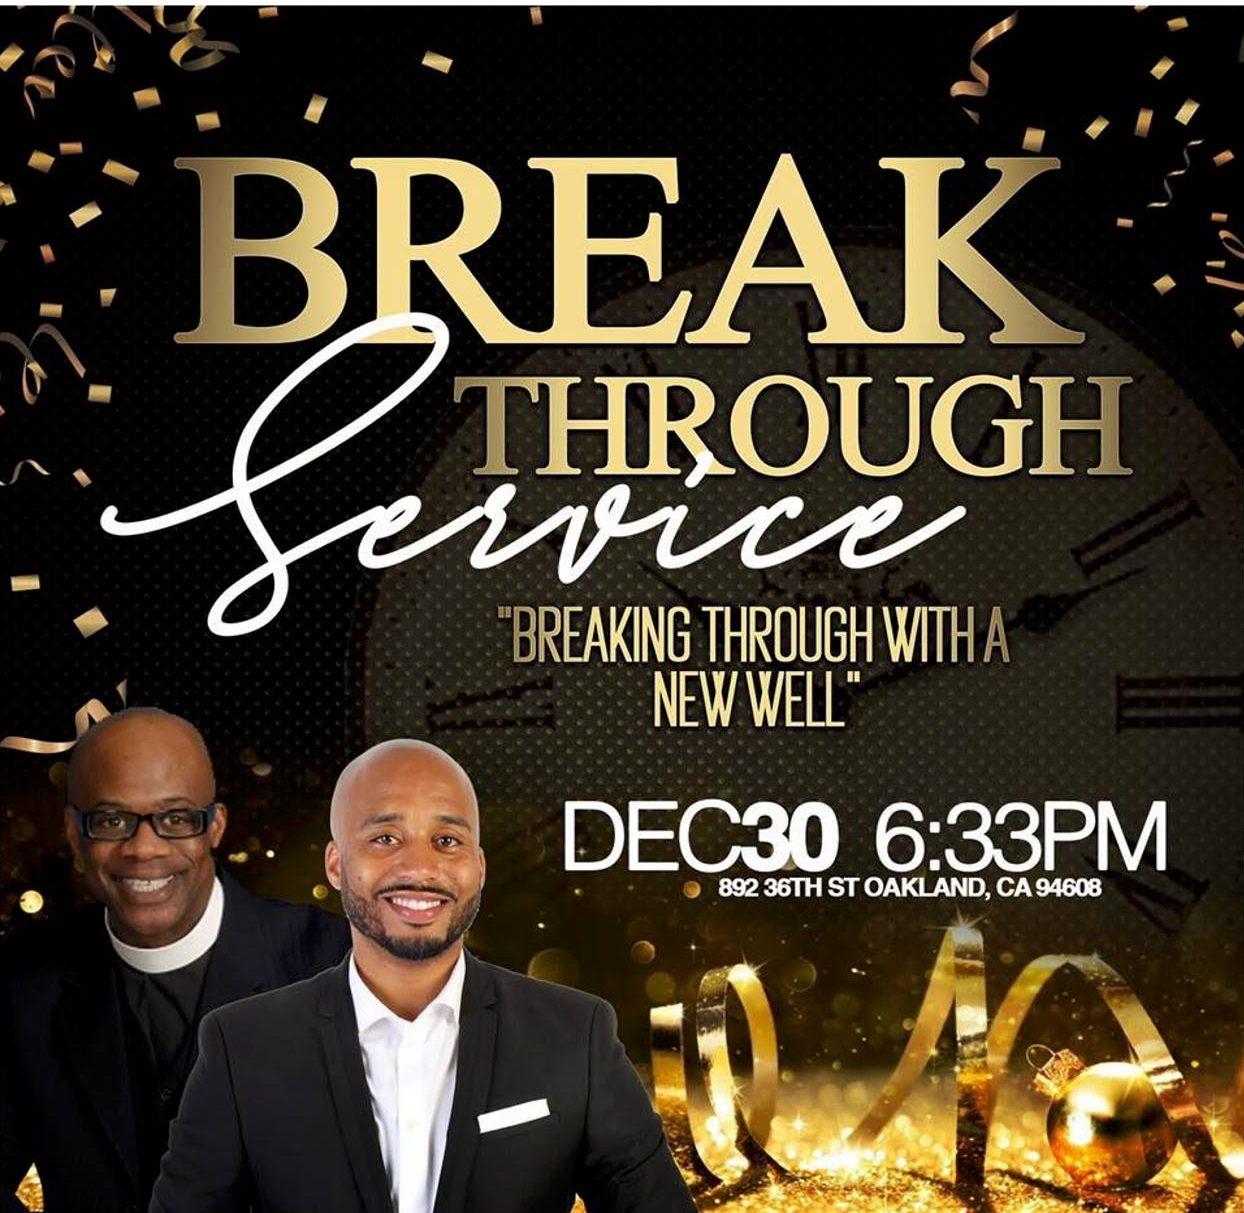 New Hope WellSpring NYE Breakthrough 2018